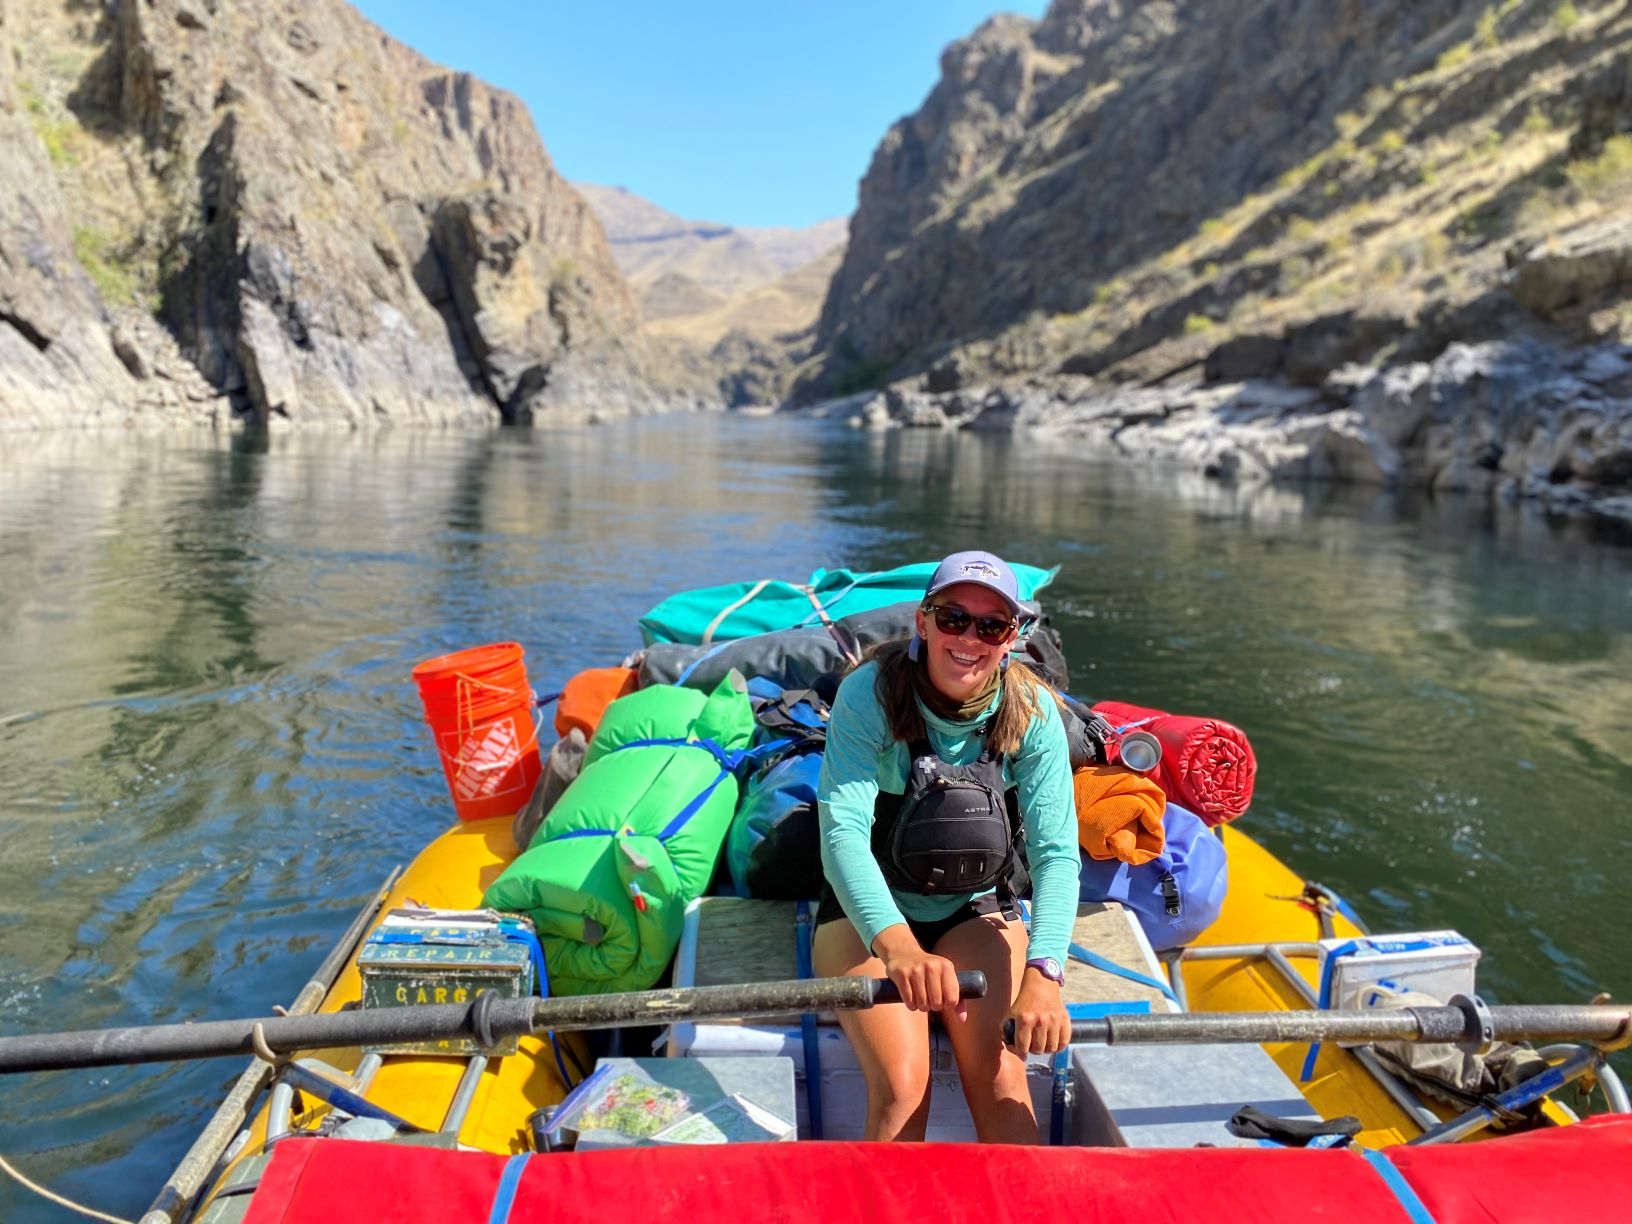 Female river raft guide, wearing a life jacket, sunglasses, and hat, sitting in a raft surrounded by colorful gear bags, with the river and rocky riverbank in the background.